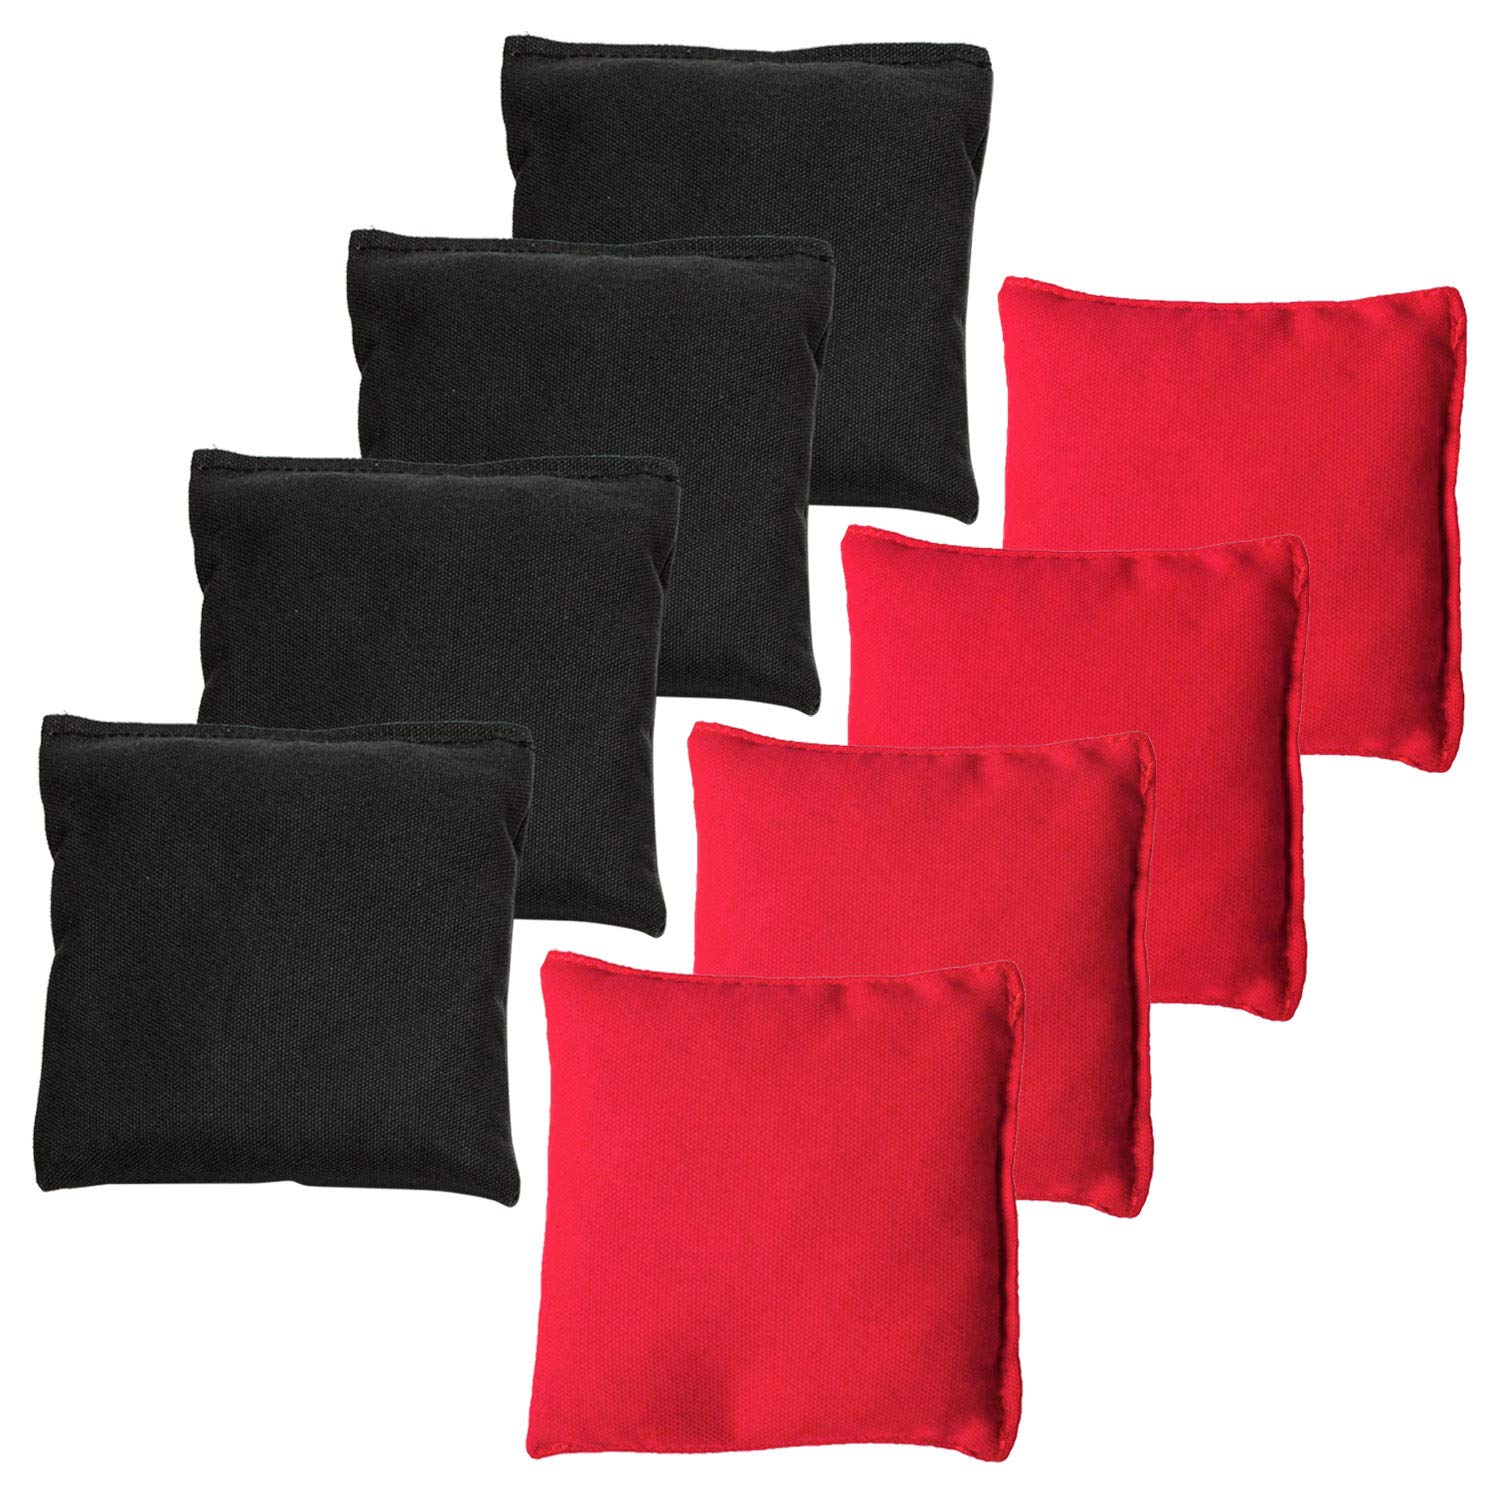 JMEXSUSS Weather Resistant Standard Corn Hole Bags, Set of 8 Regulation Cornhole Bags for Tossing Game (Black/Red) by JMEXSUSS